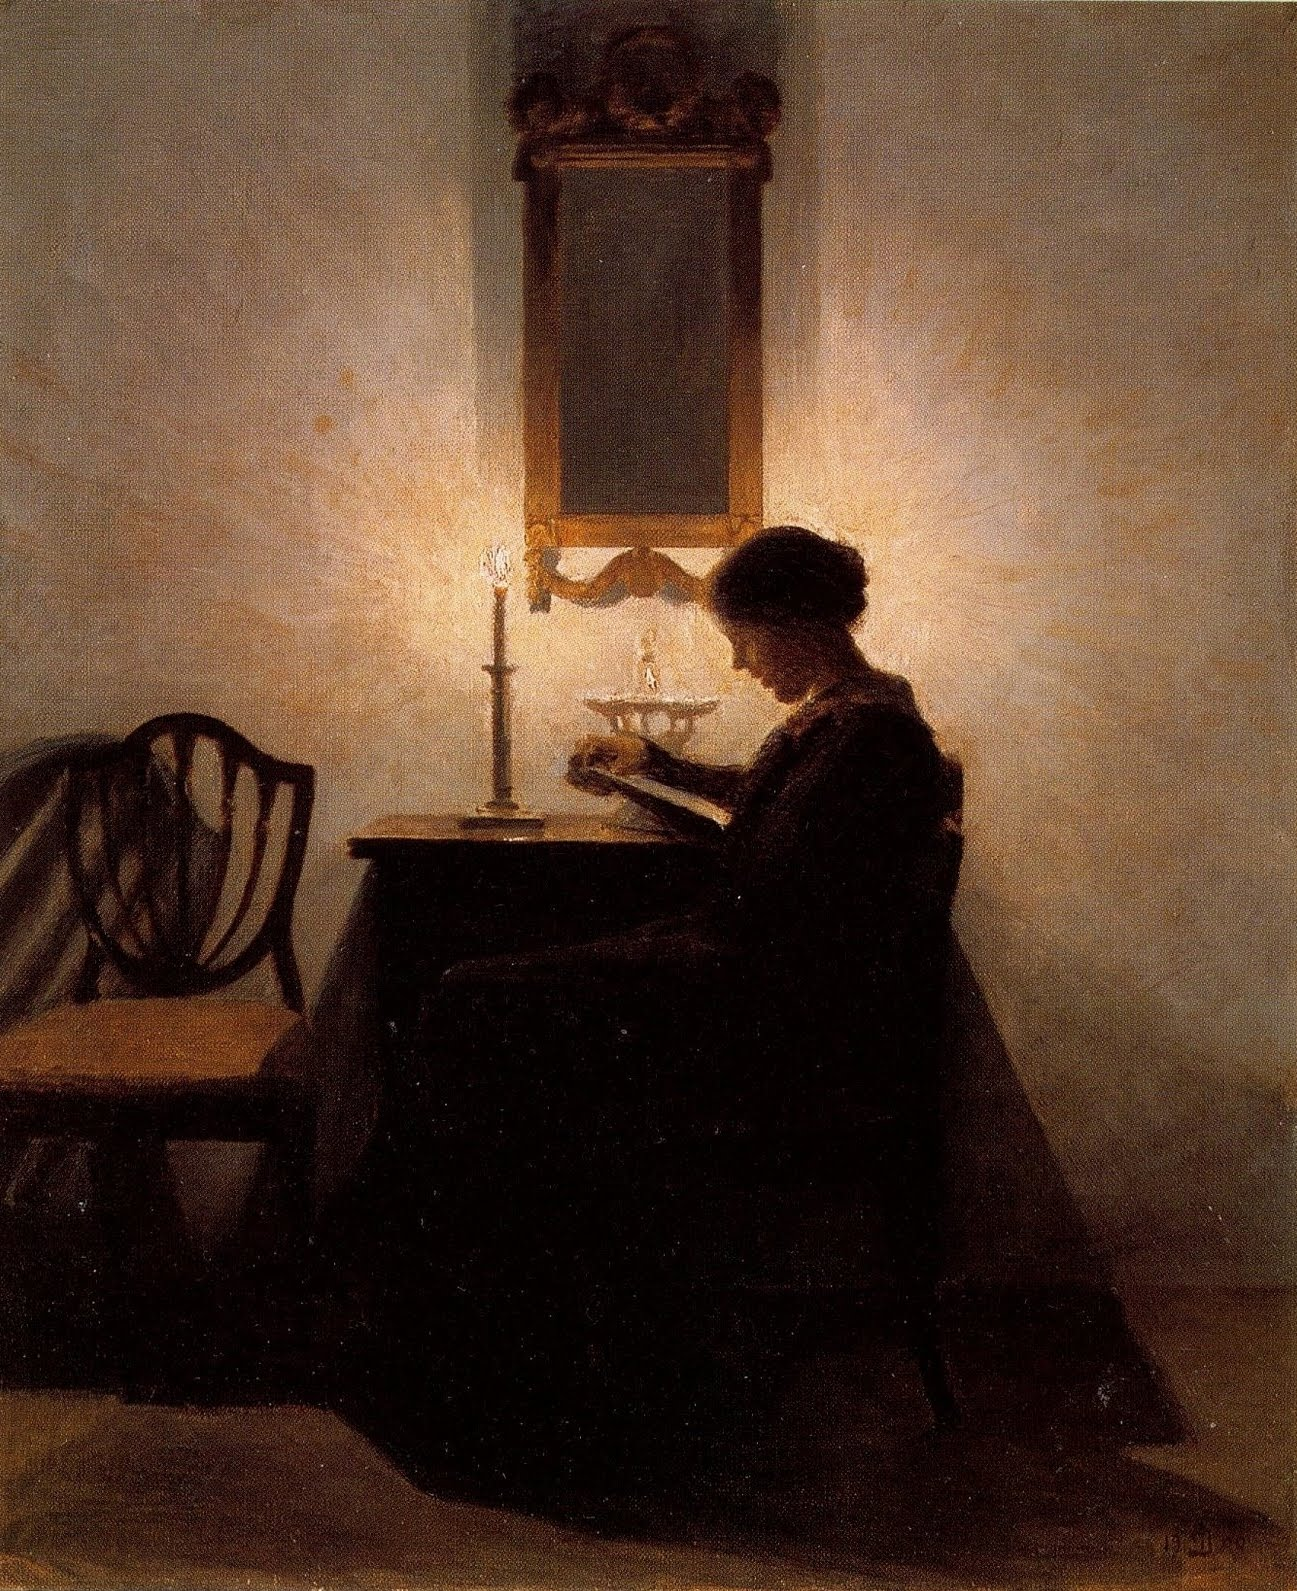 Peter Vilhelm Ilsted (1)